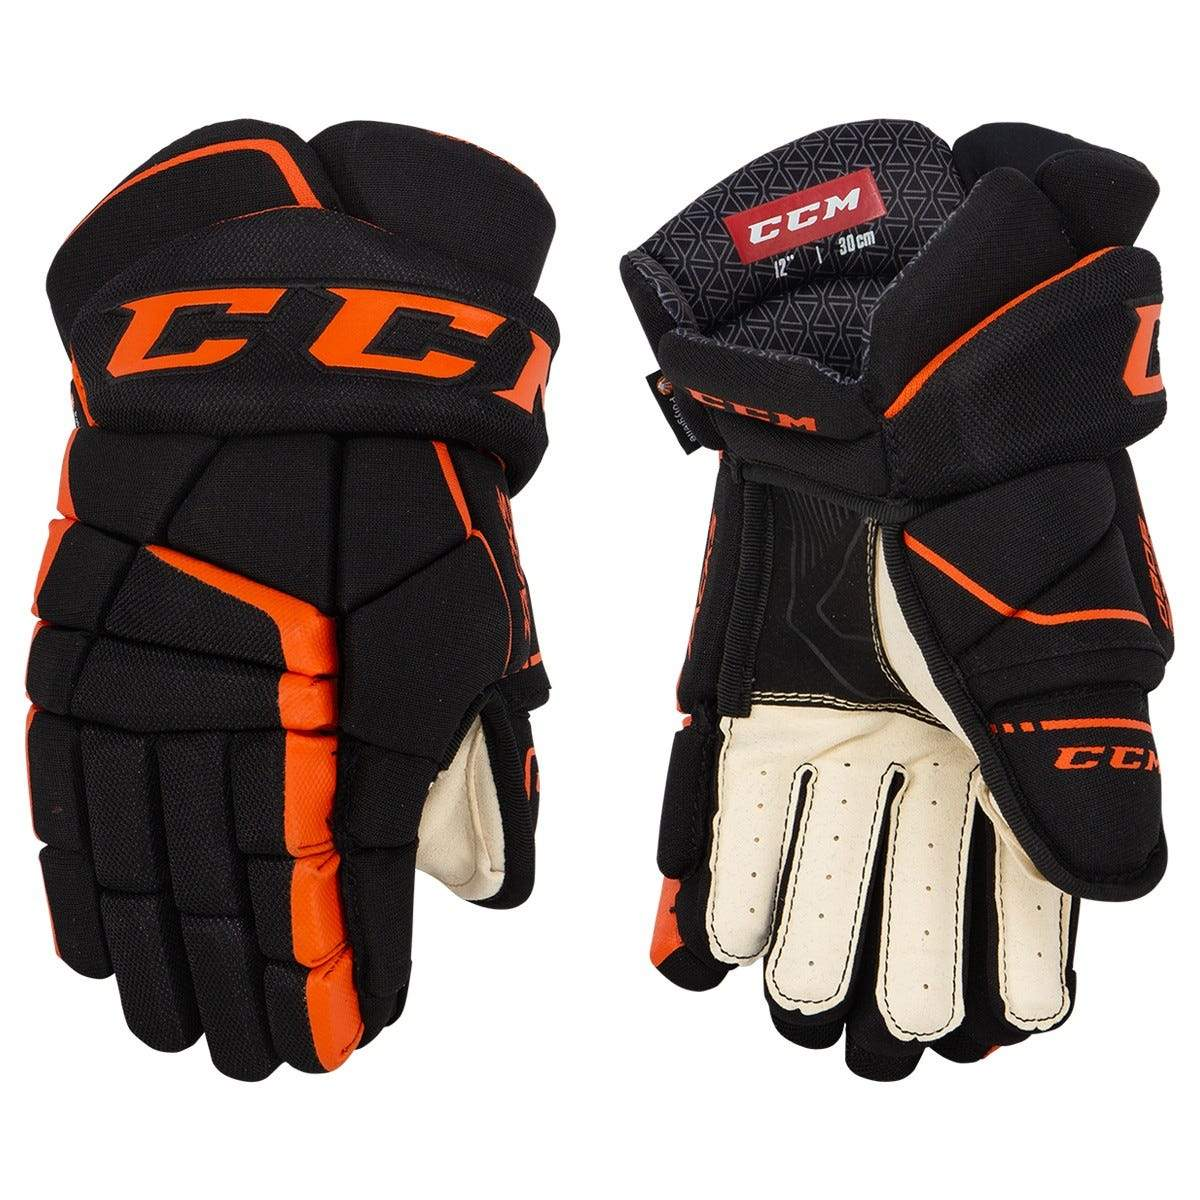 CCM Tacks 9060 Junior Hockey Gloves - Black/Orange (Mock Product)